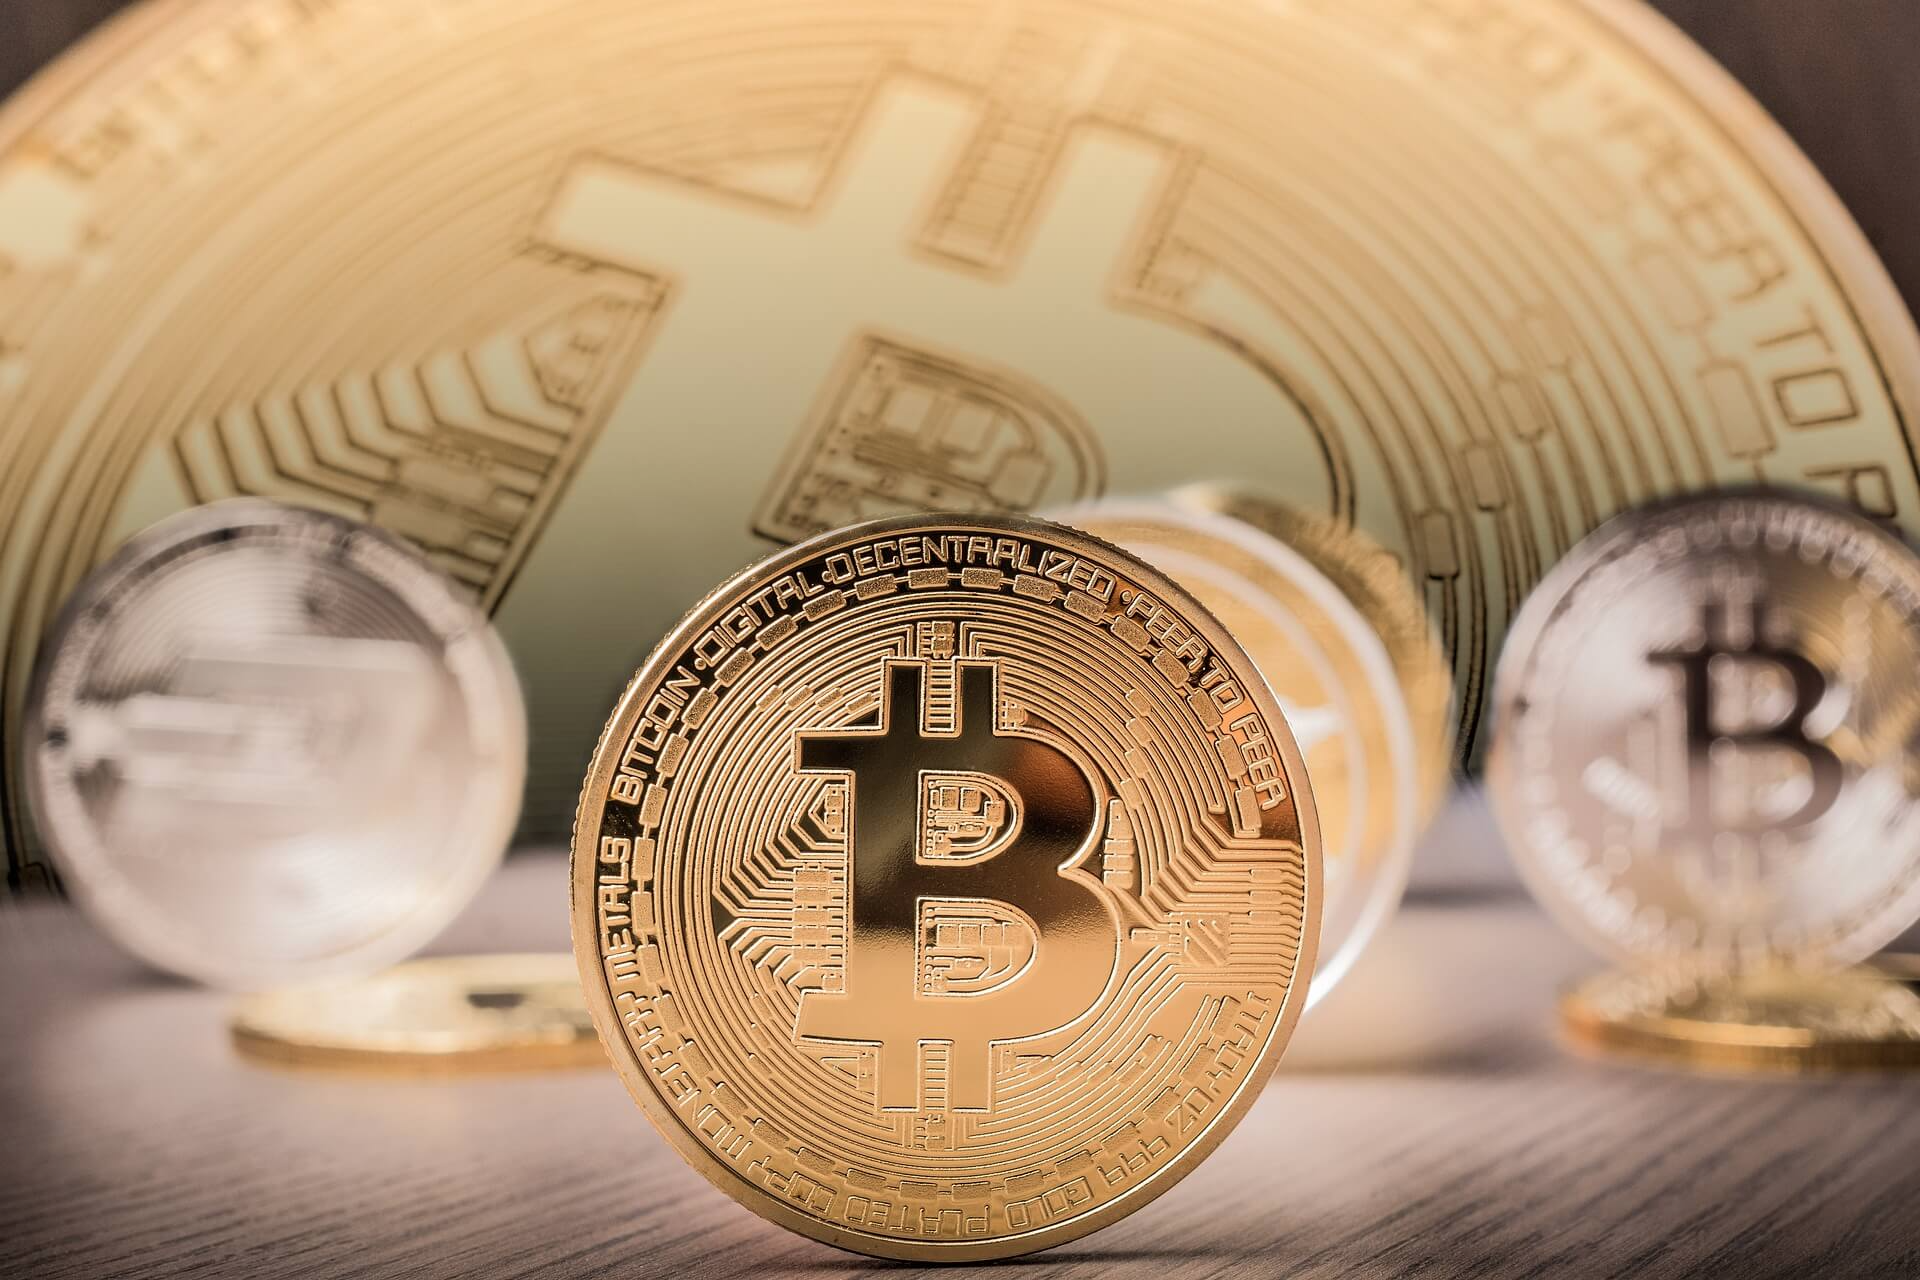 The strategy of major U.S. companies will boost Bitcoin's adoption by the general public